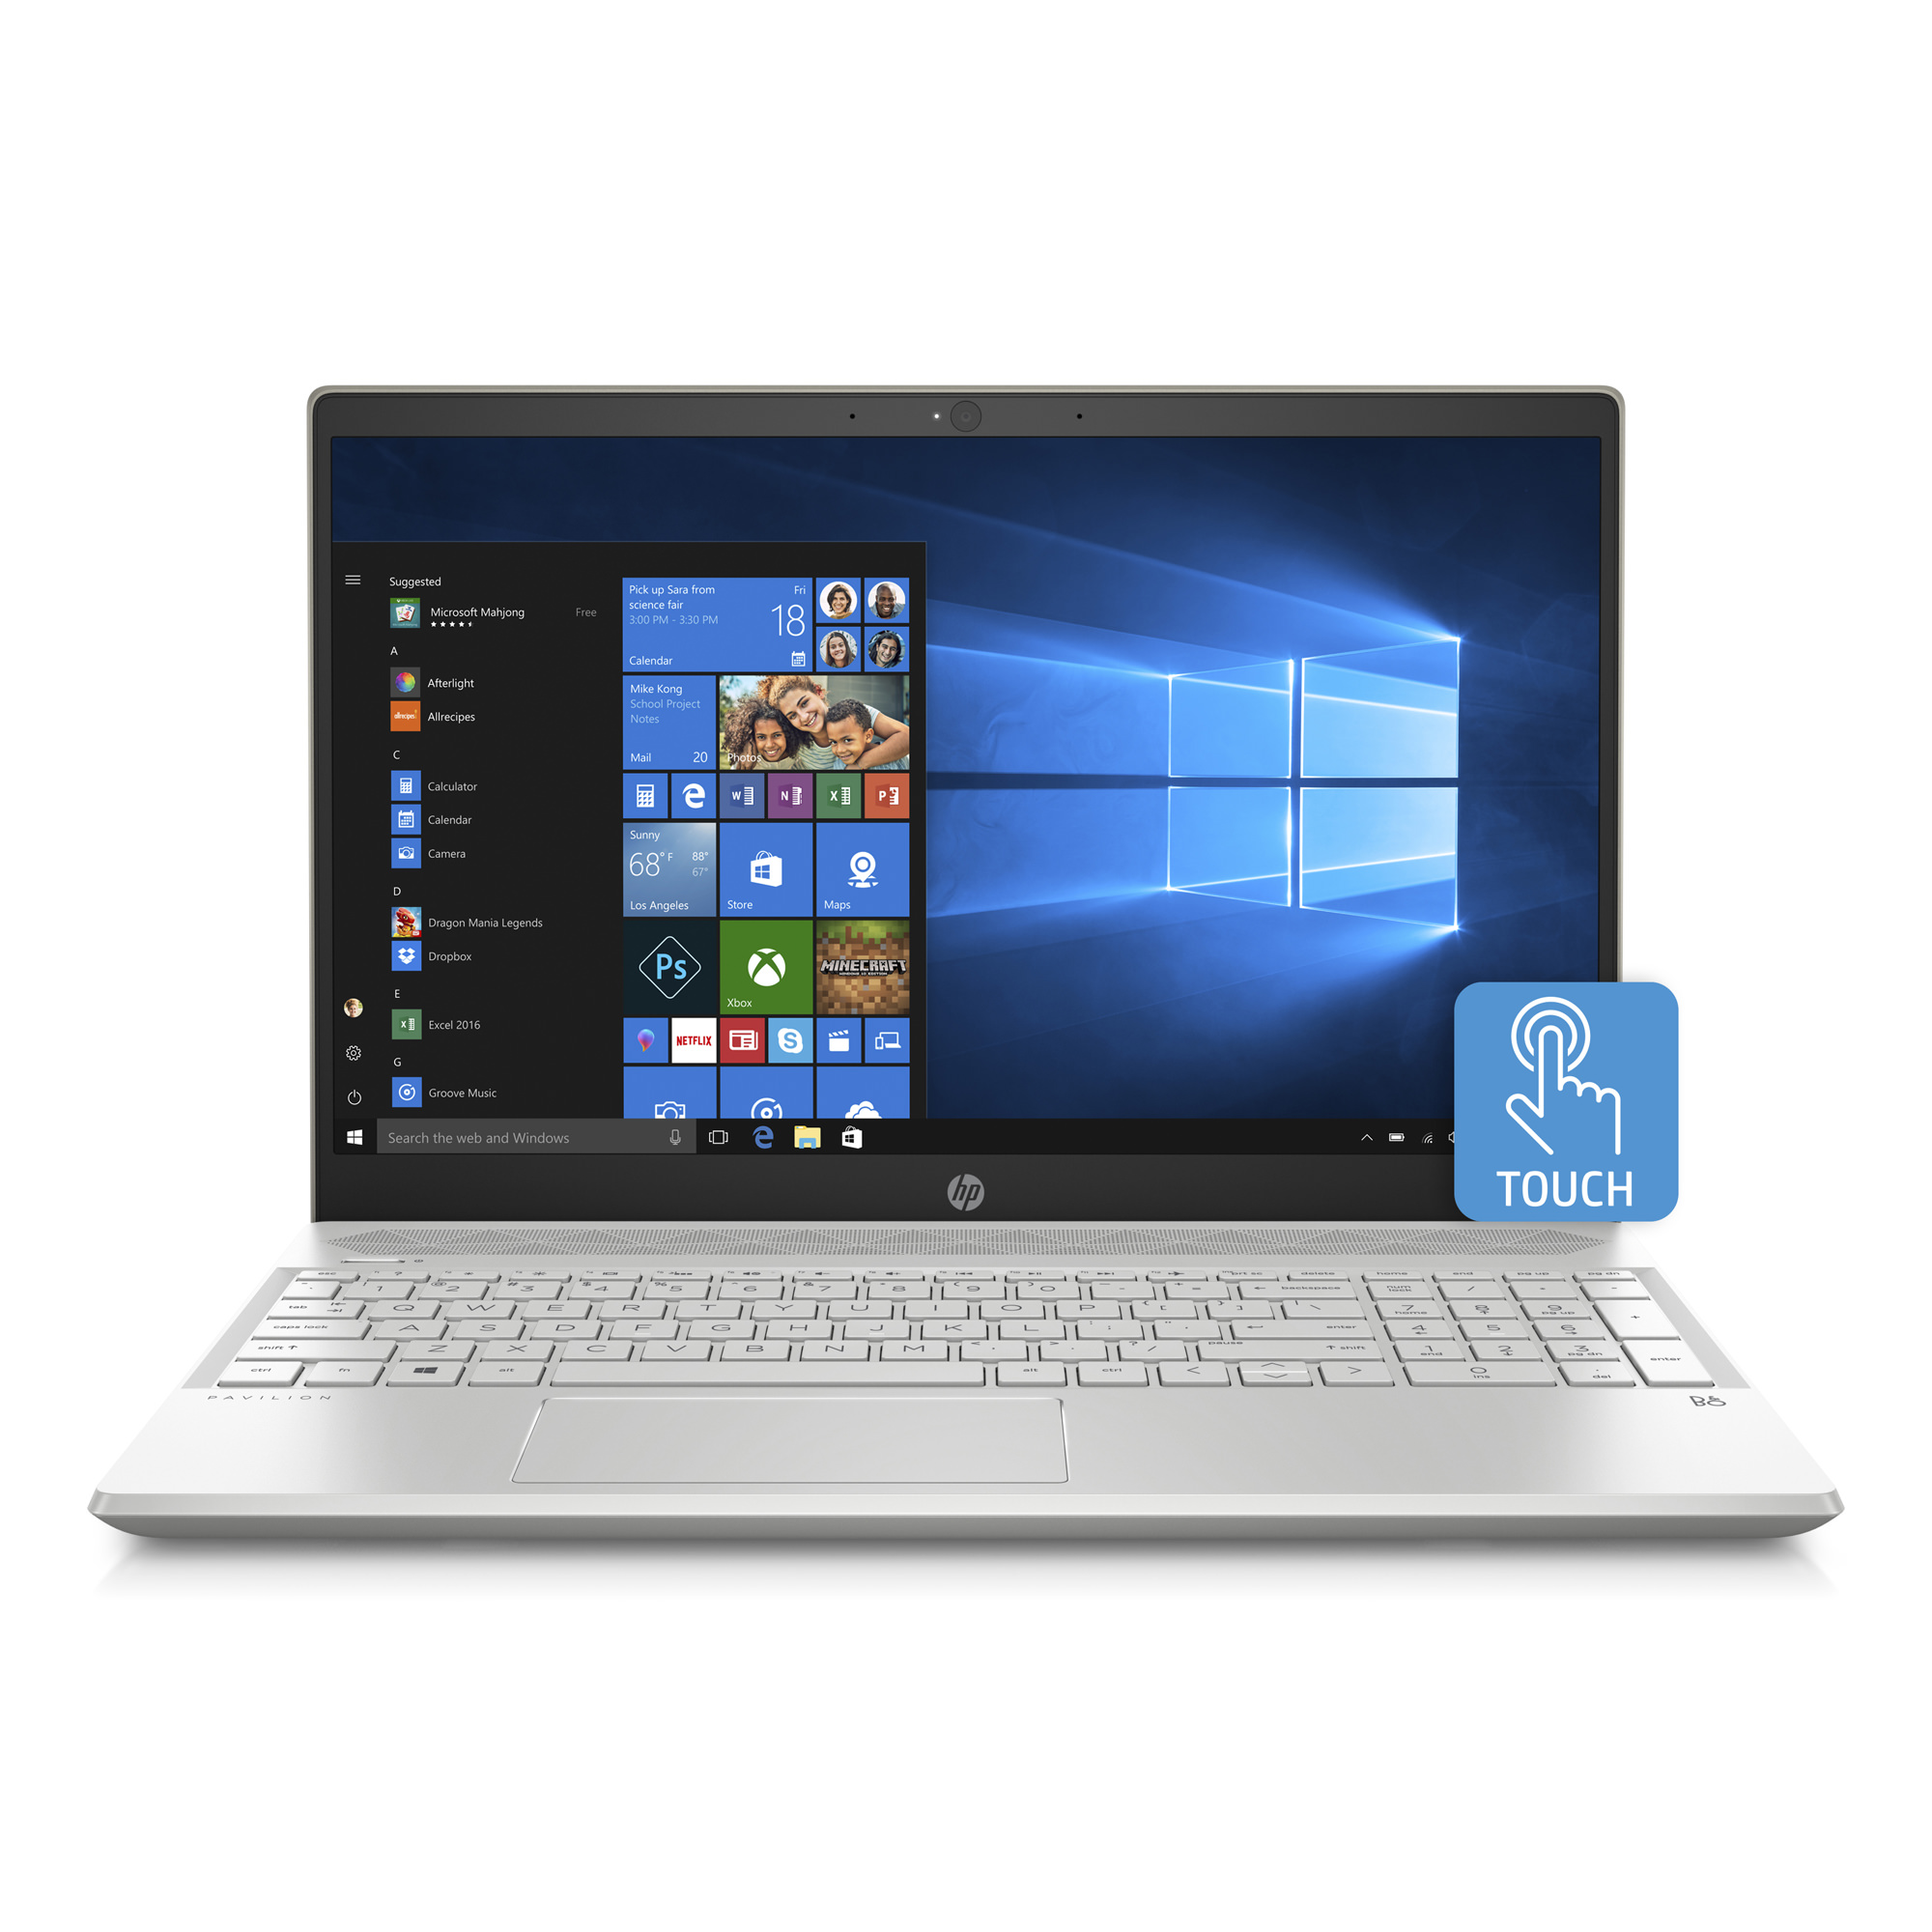 HP Pavilion 15-CS0079NR Ceramic White and Pale Gold 15.6 inch Touch Laptop, Windows 10, 8GB Memory, 1 TB Hard Drive, UMA Graphics, B&O Play